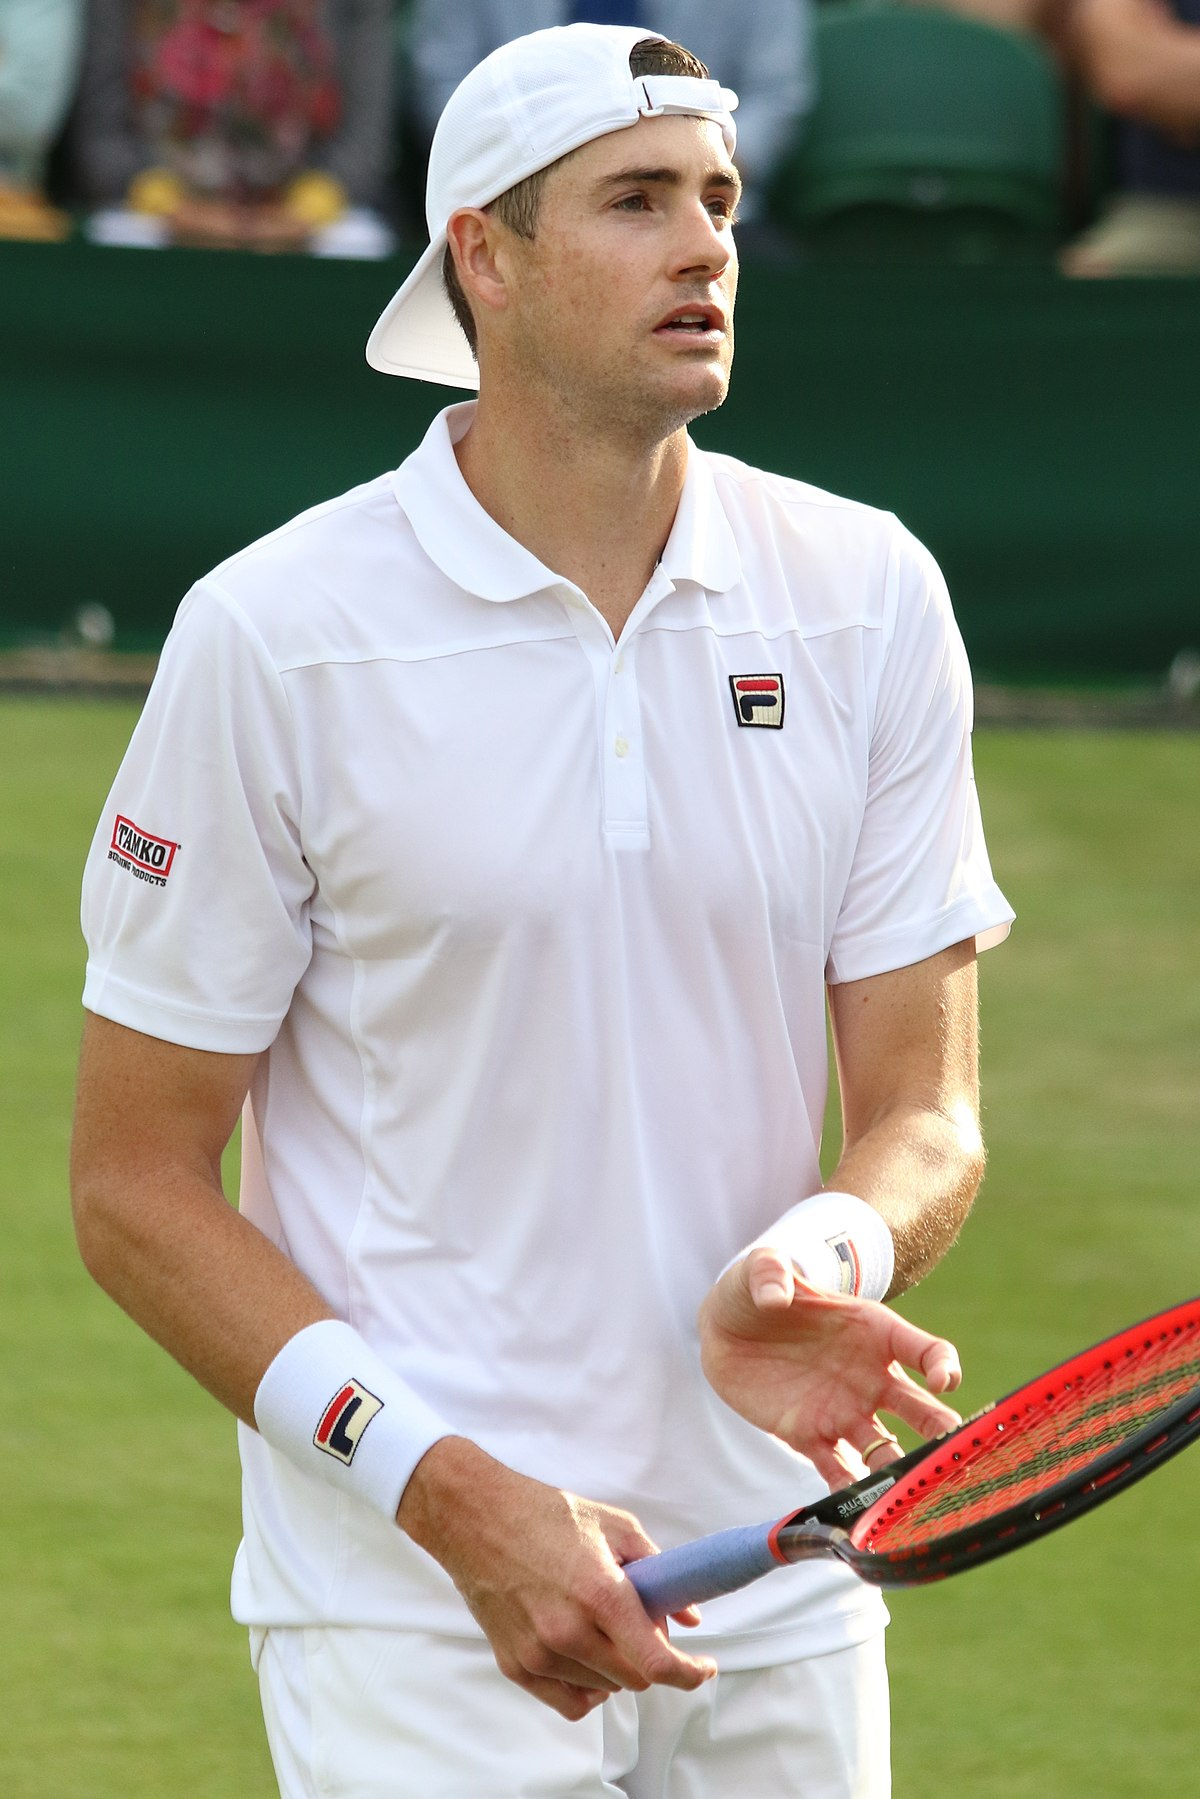 John Isner Phone number, Email Id, Fanmail, Instagram, Tiktok, and Contact Details